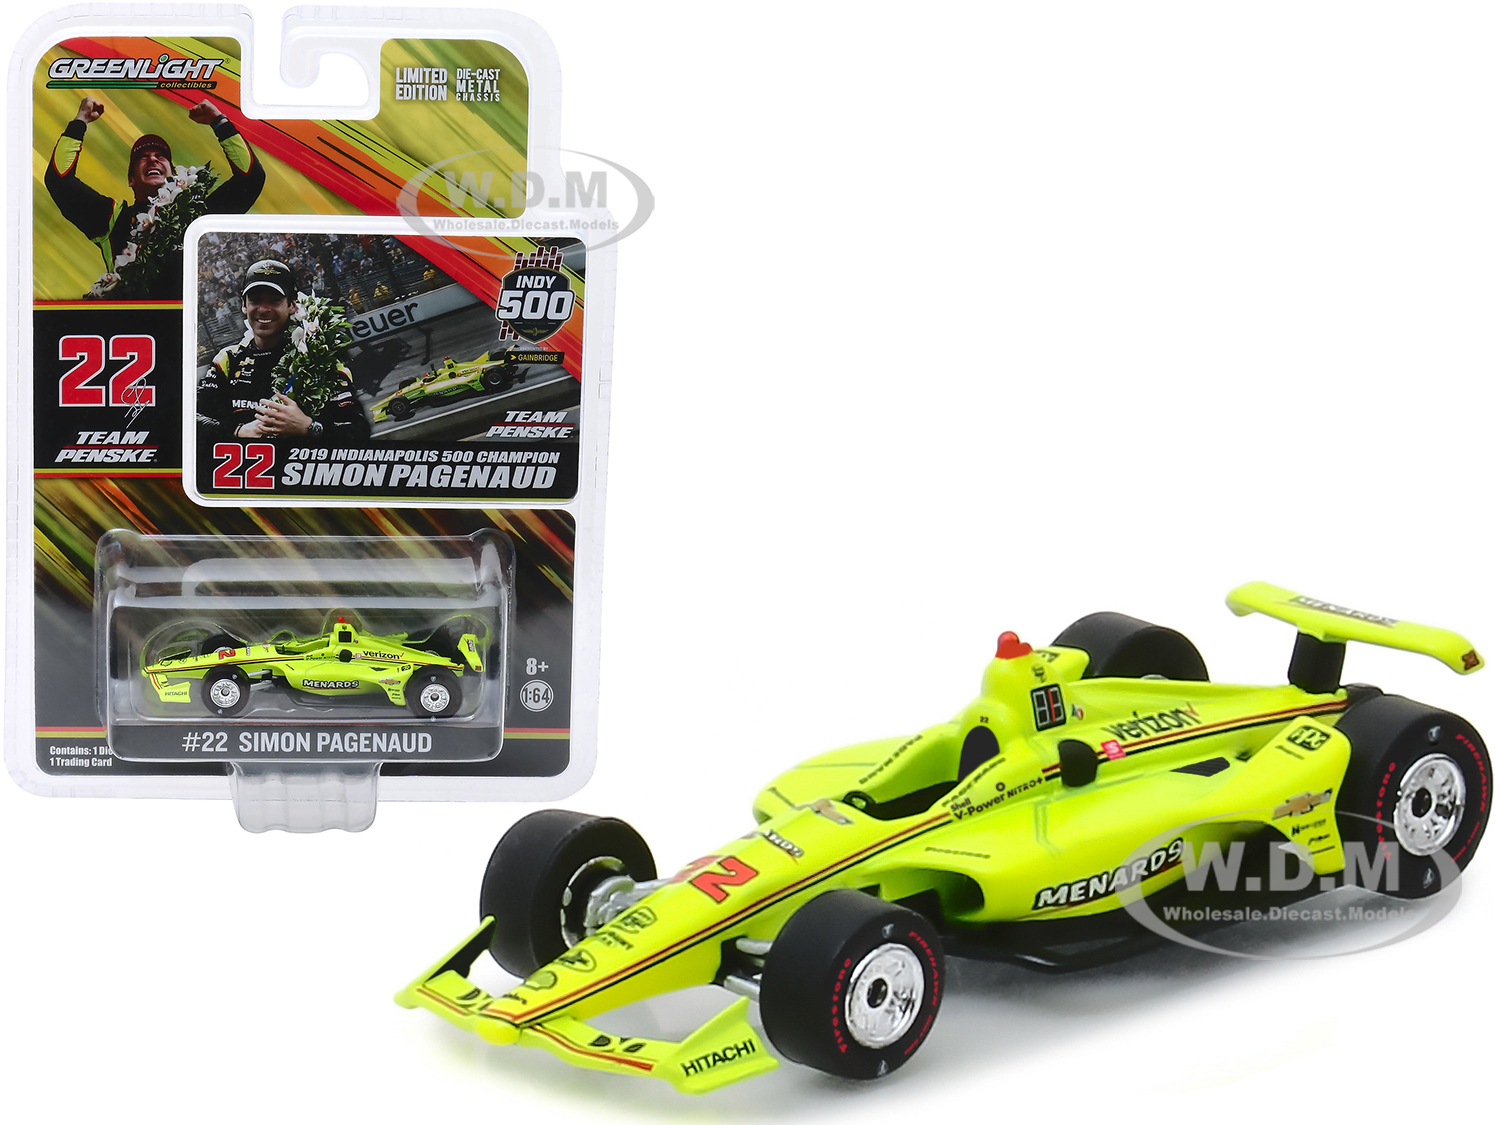 Dallara Indy Car #22 Simon Pagenaud Menards Team Penske Indianapolis 500 Champion (2019) 1/64 Diecast Model Car by Greenlight - from $8.99